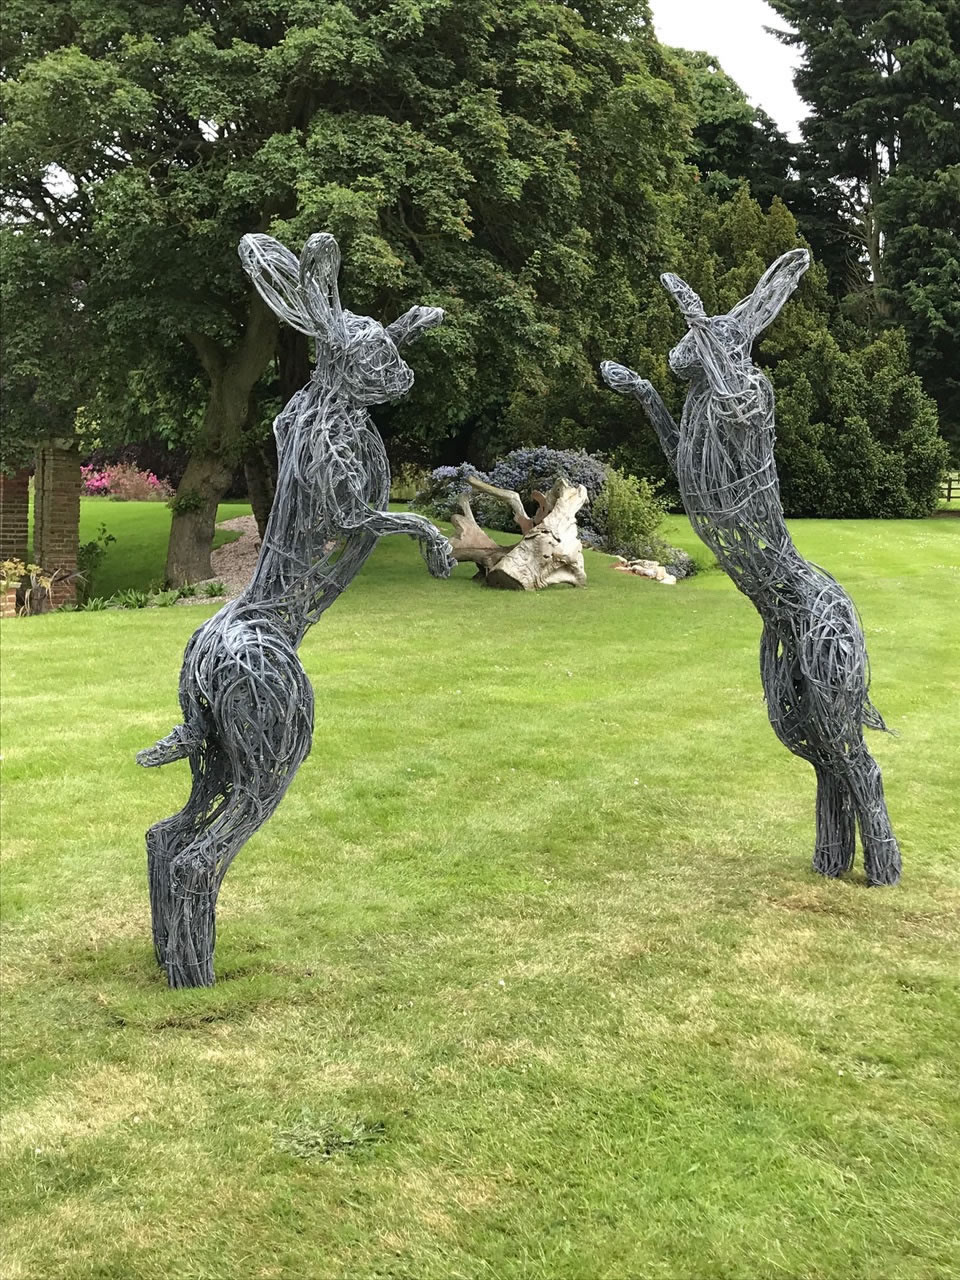 My 8 foot Chelsea Flower Show boxing hare wire sculptures installed in Norfolk were galvanised and etched to an aged finish